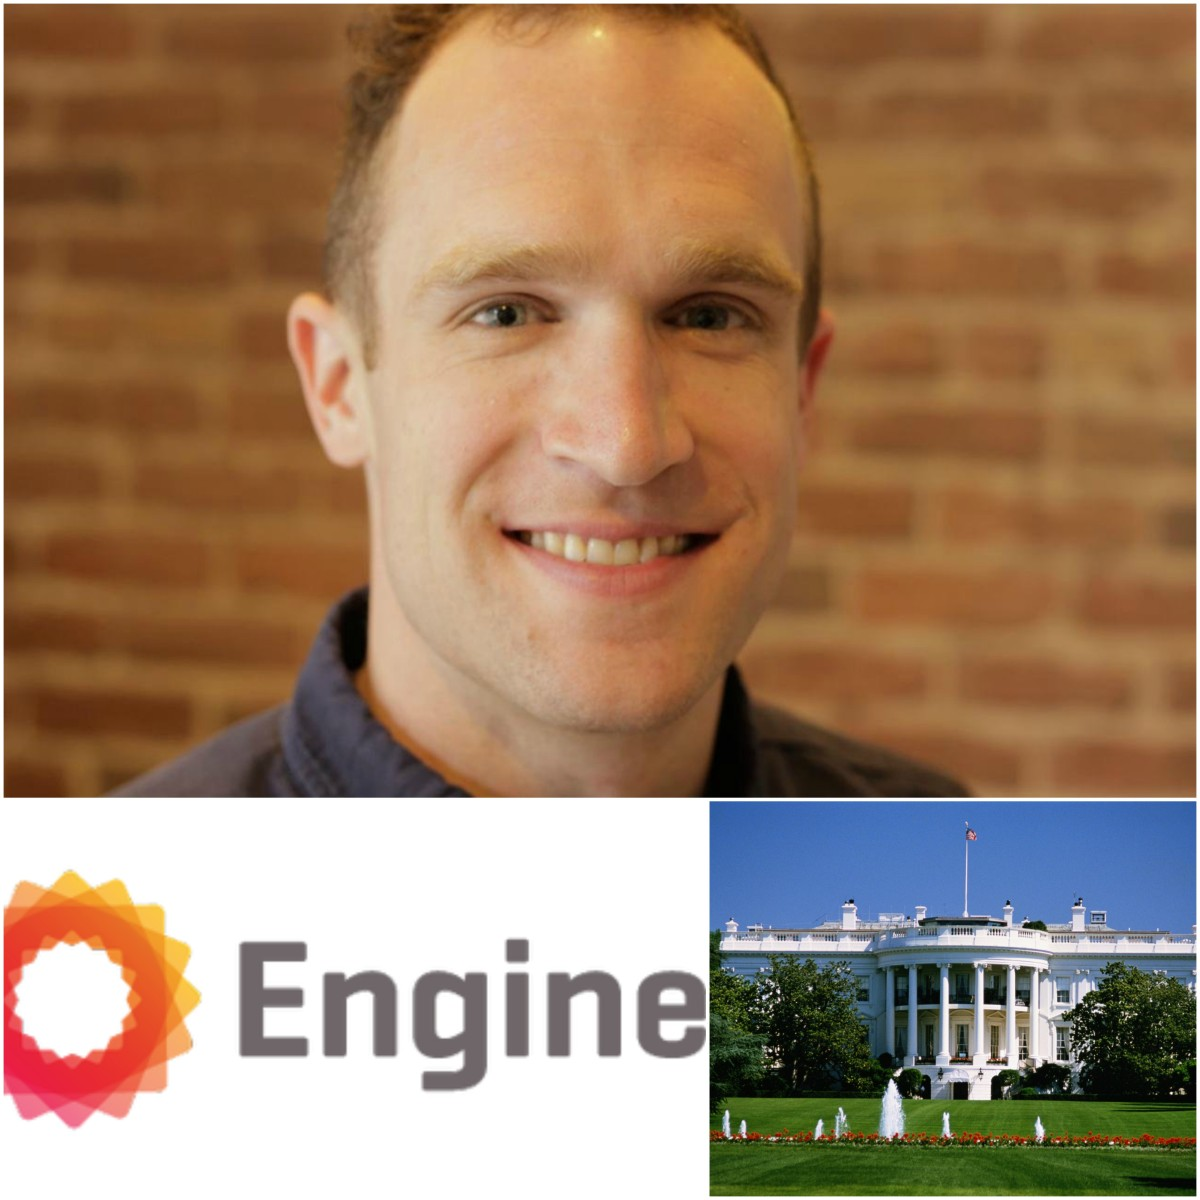 CLBR #219: Evan Engstrom on Engine's Presidential Candidate Scorecard